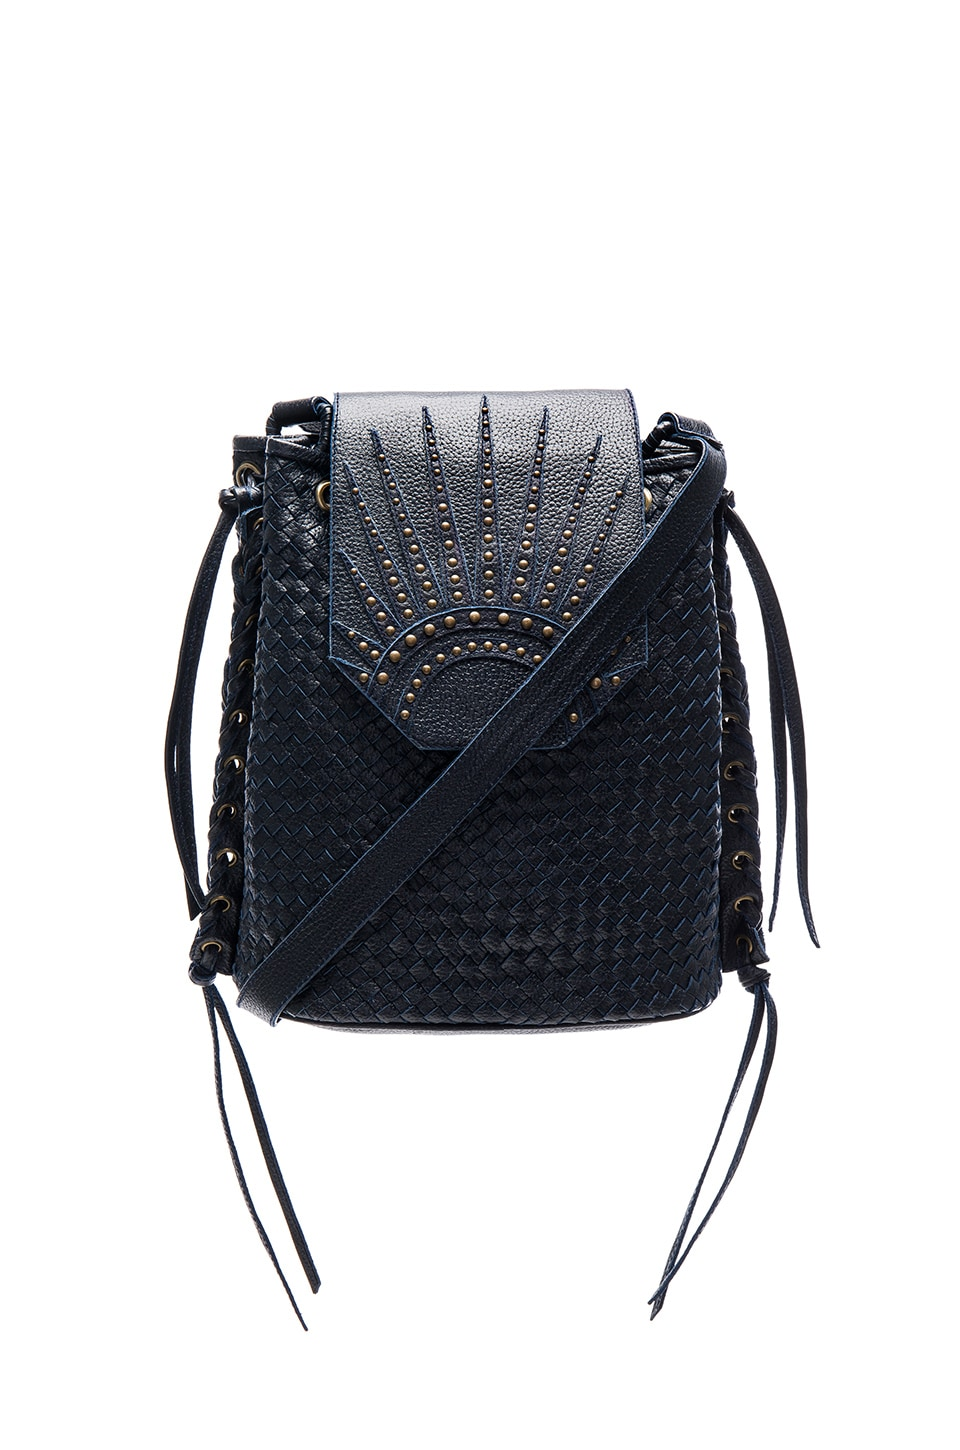 Cleobella x Zella Day for REVOLVE Bucket Bag in Indigo